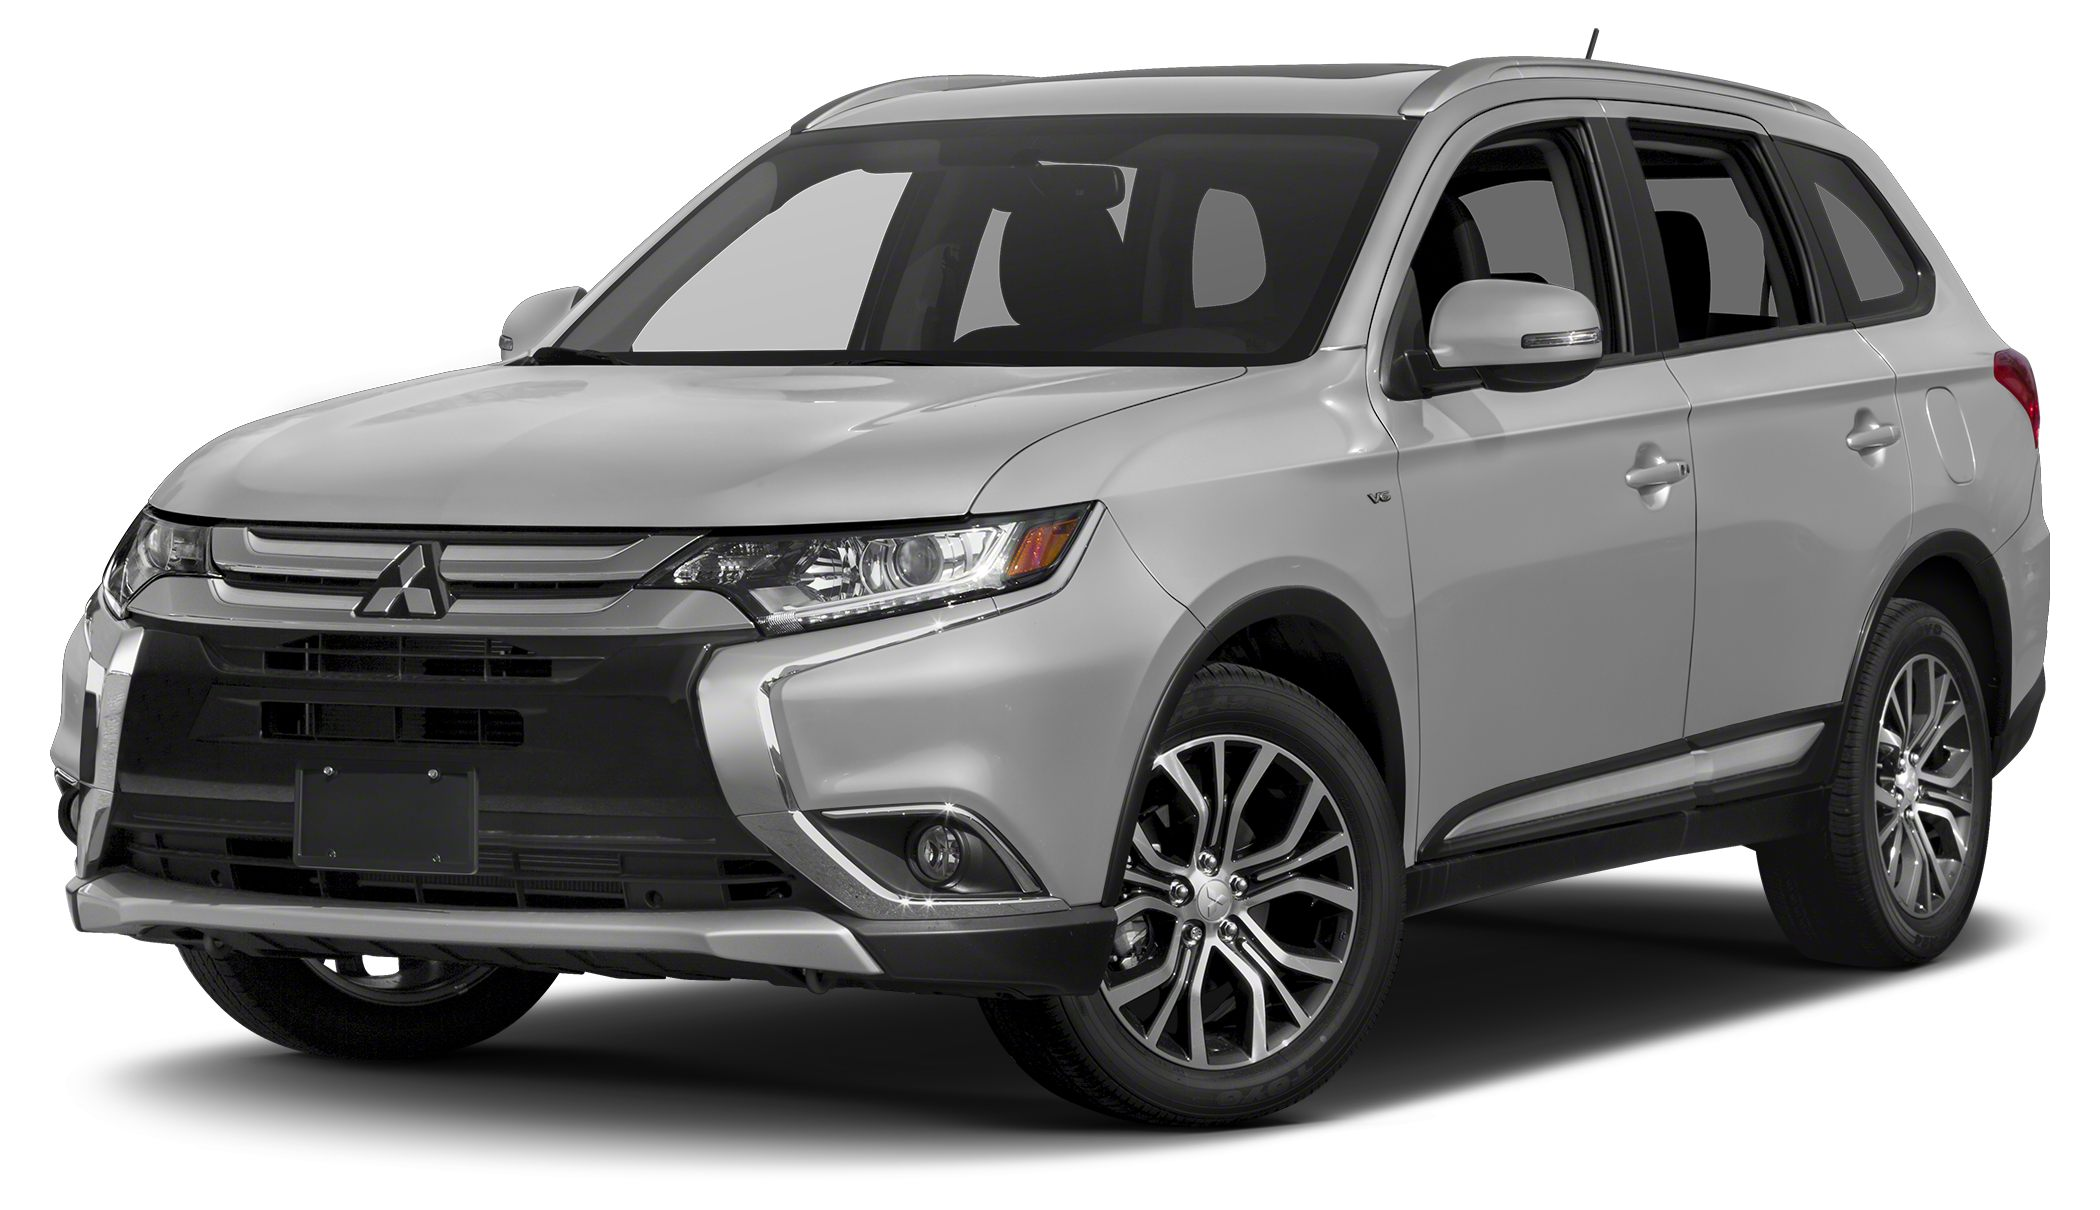 2016 Mitsubishi Outlander SE THIS VEHICLE COMES WITH OUR BEST PRICE GUARANTEE FIND A BETTER ON A